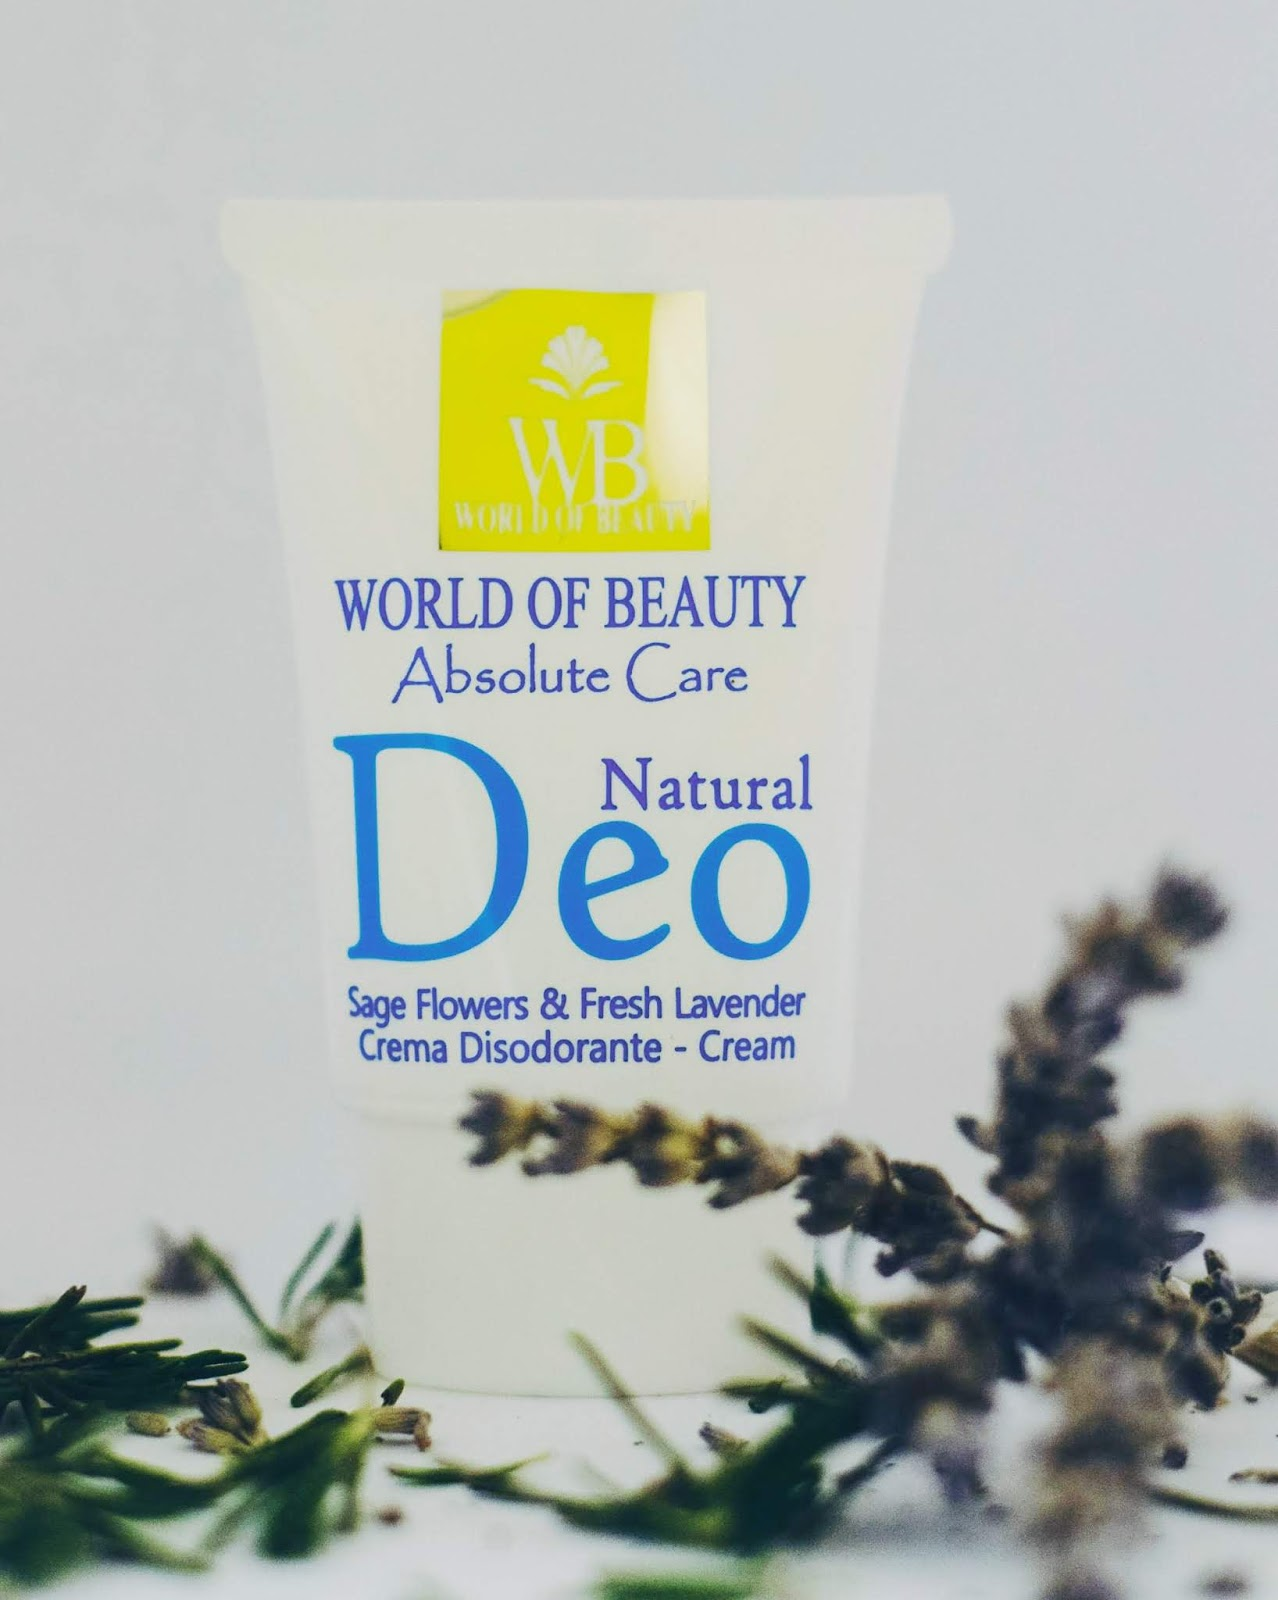 world of beauty deo cream